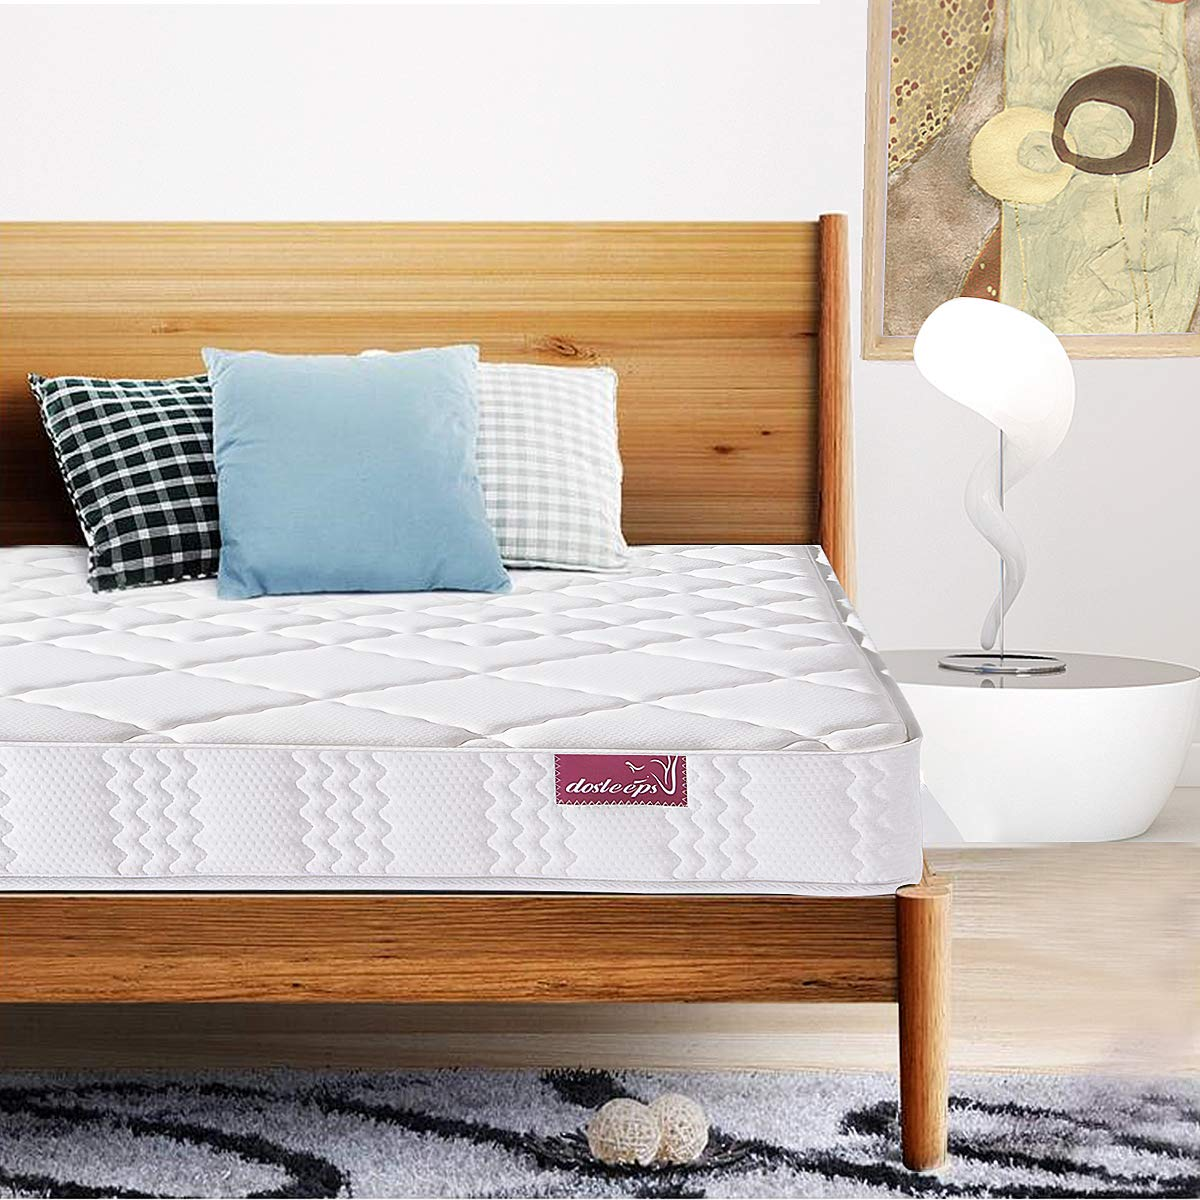 DOSLEEPS Super Comfort Hybrid Innerspring Mattress Set with 3D Knitted Dual-Layered Breathable Cover-7''-Certified by CertiPUR-US-100 Night Trial ... (Twin)